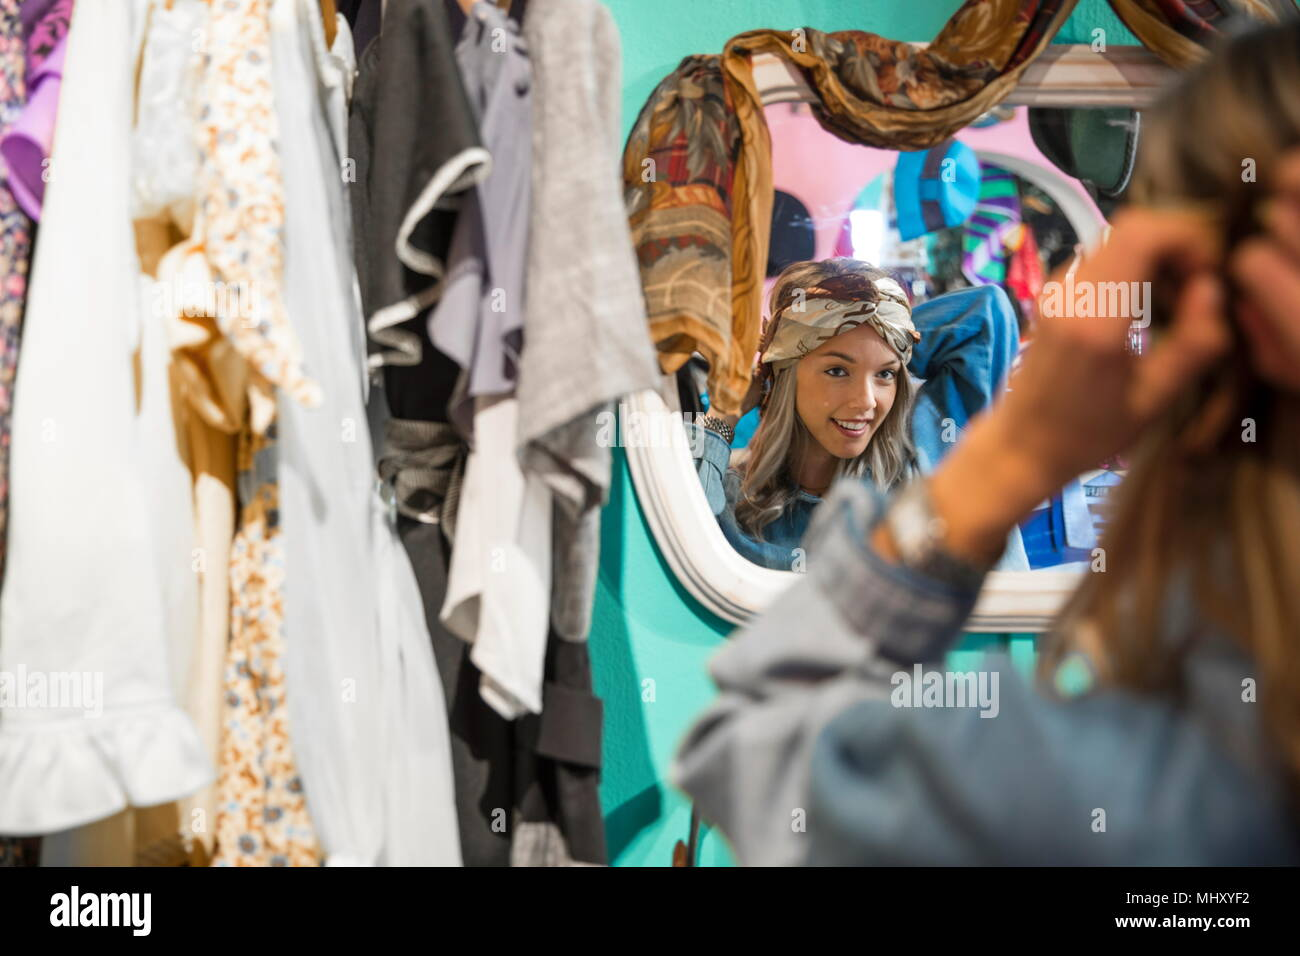 Mirror image of young woman trying on vintage clothes in thrift store - Stock Image